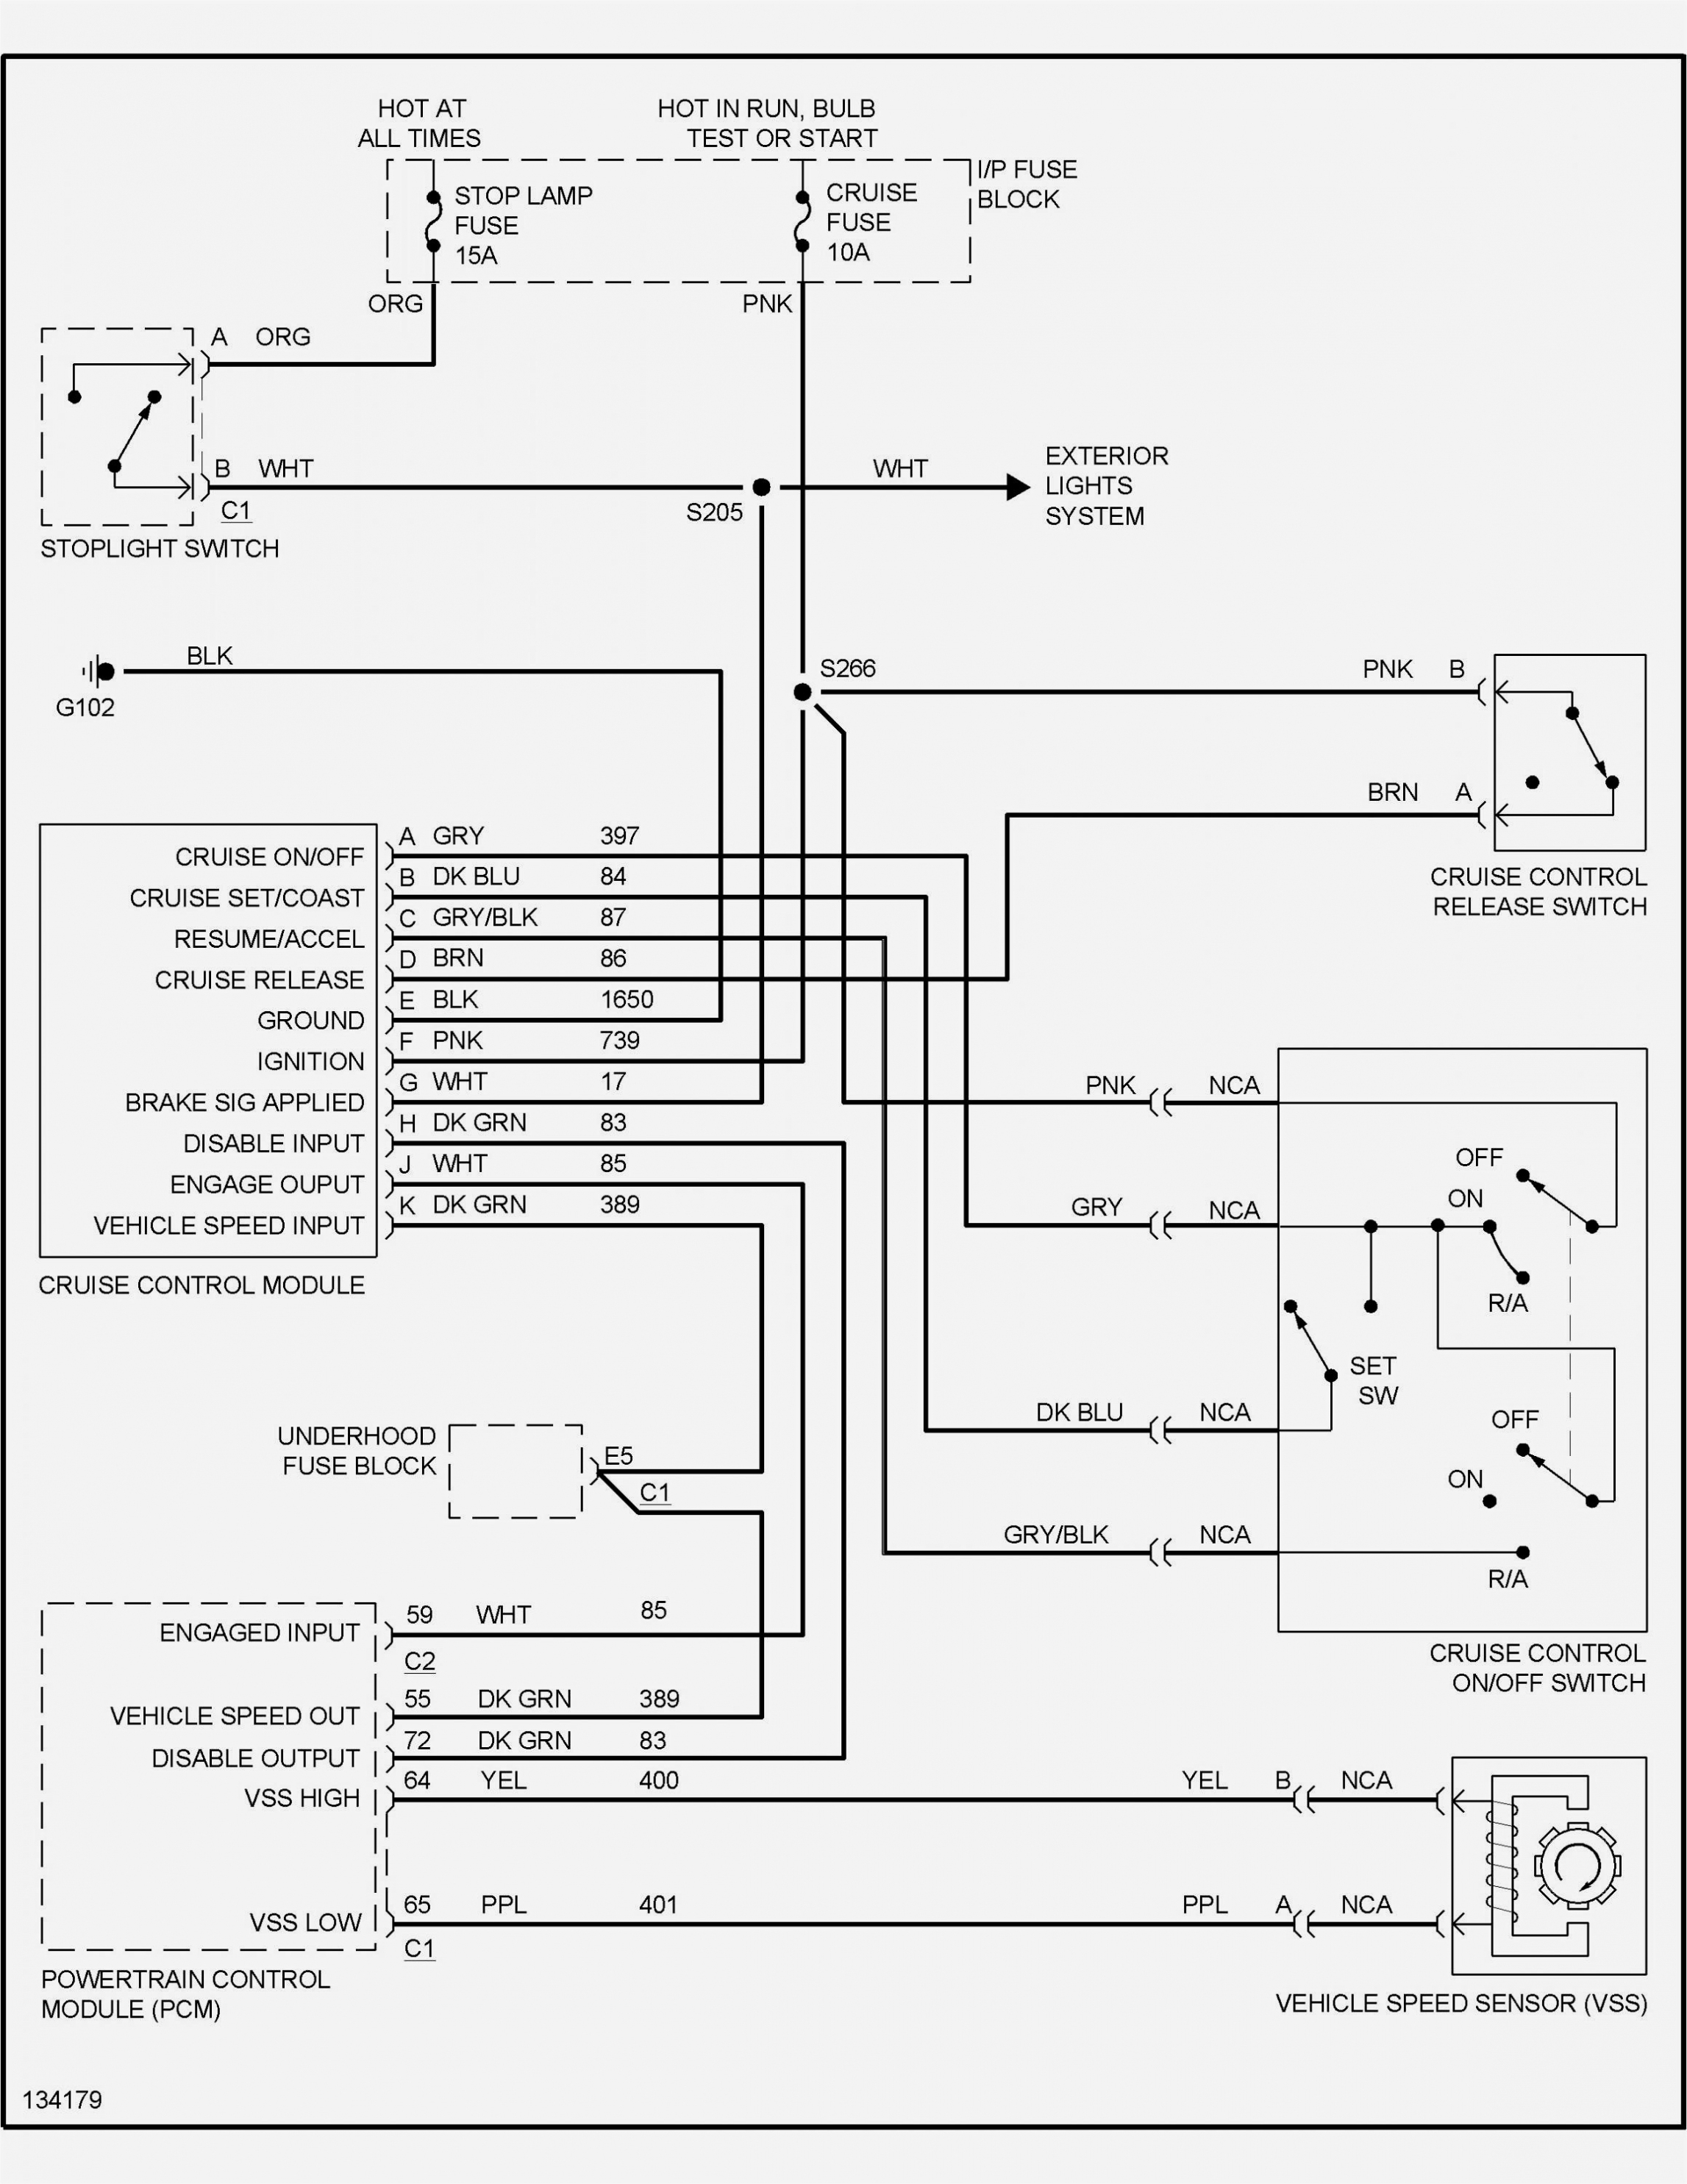 Diagram Sony Xplod Stereo Wiring Diagram Full Version Hd Quality Wiring Diagram Diagramboyesh Ristorantegioia2fiumicino It